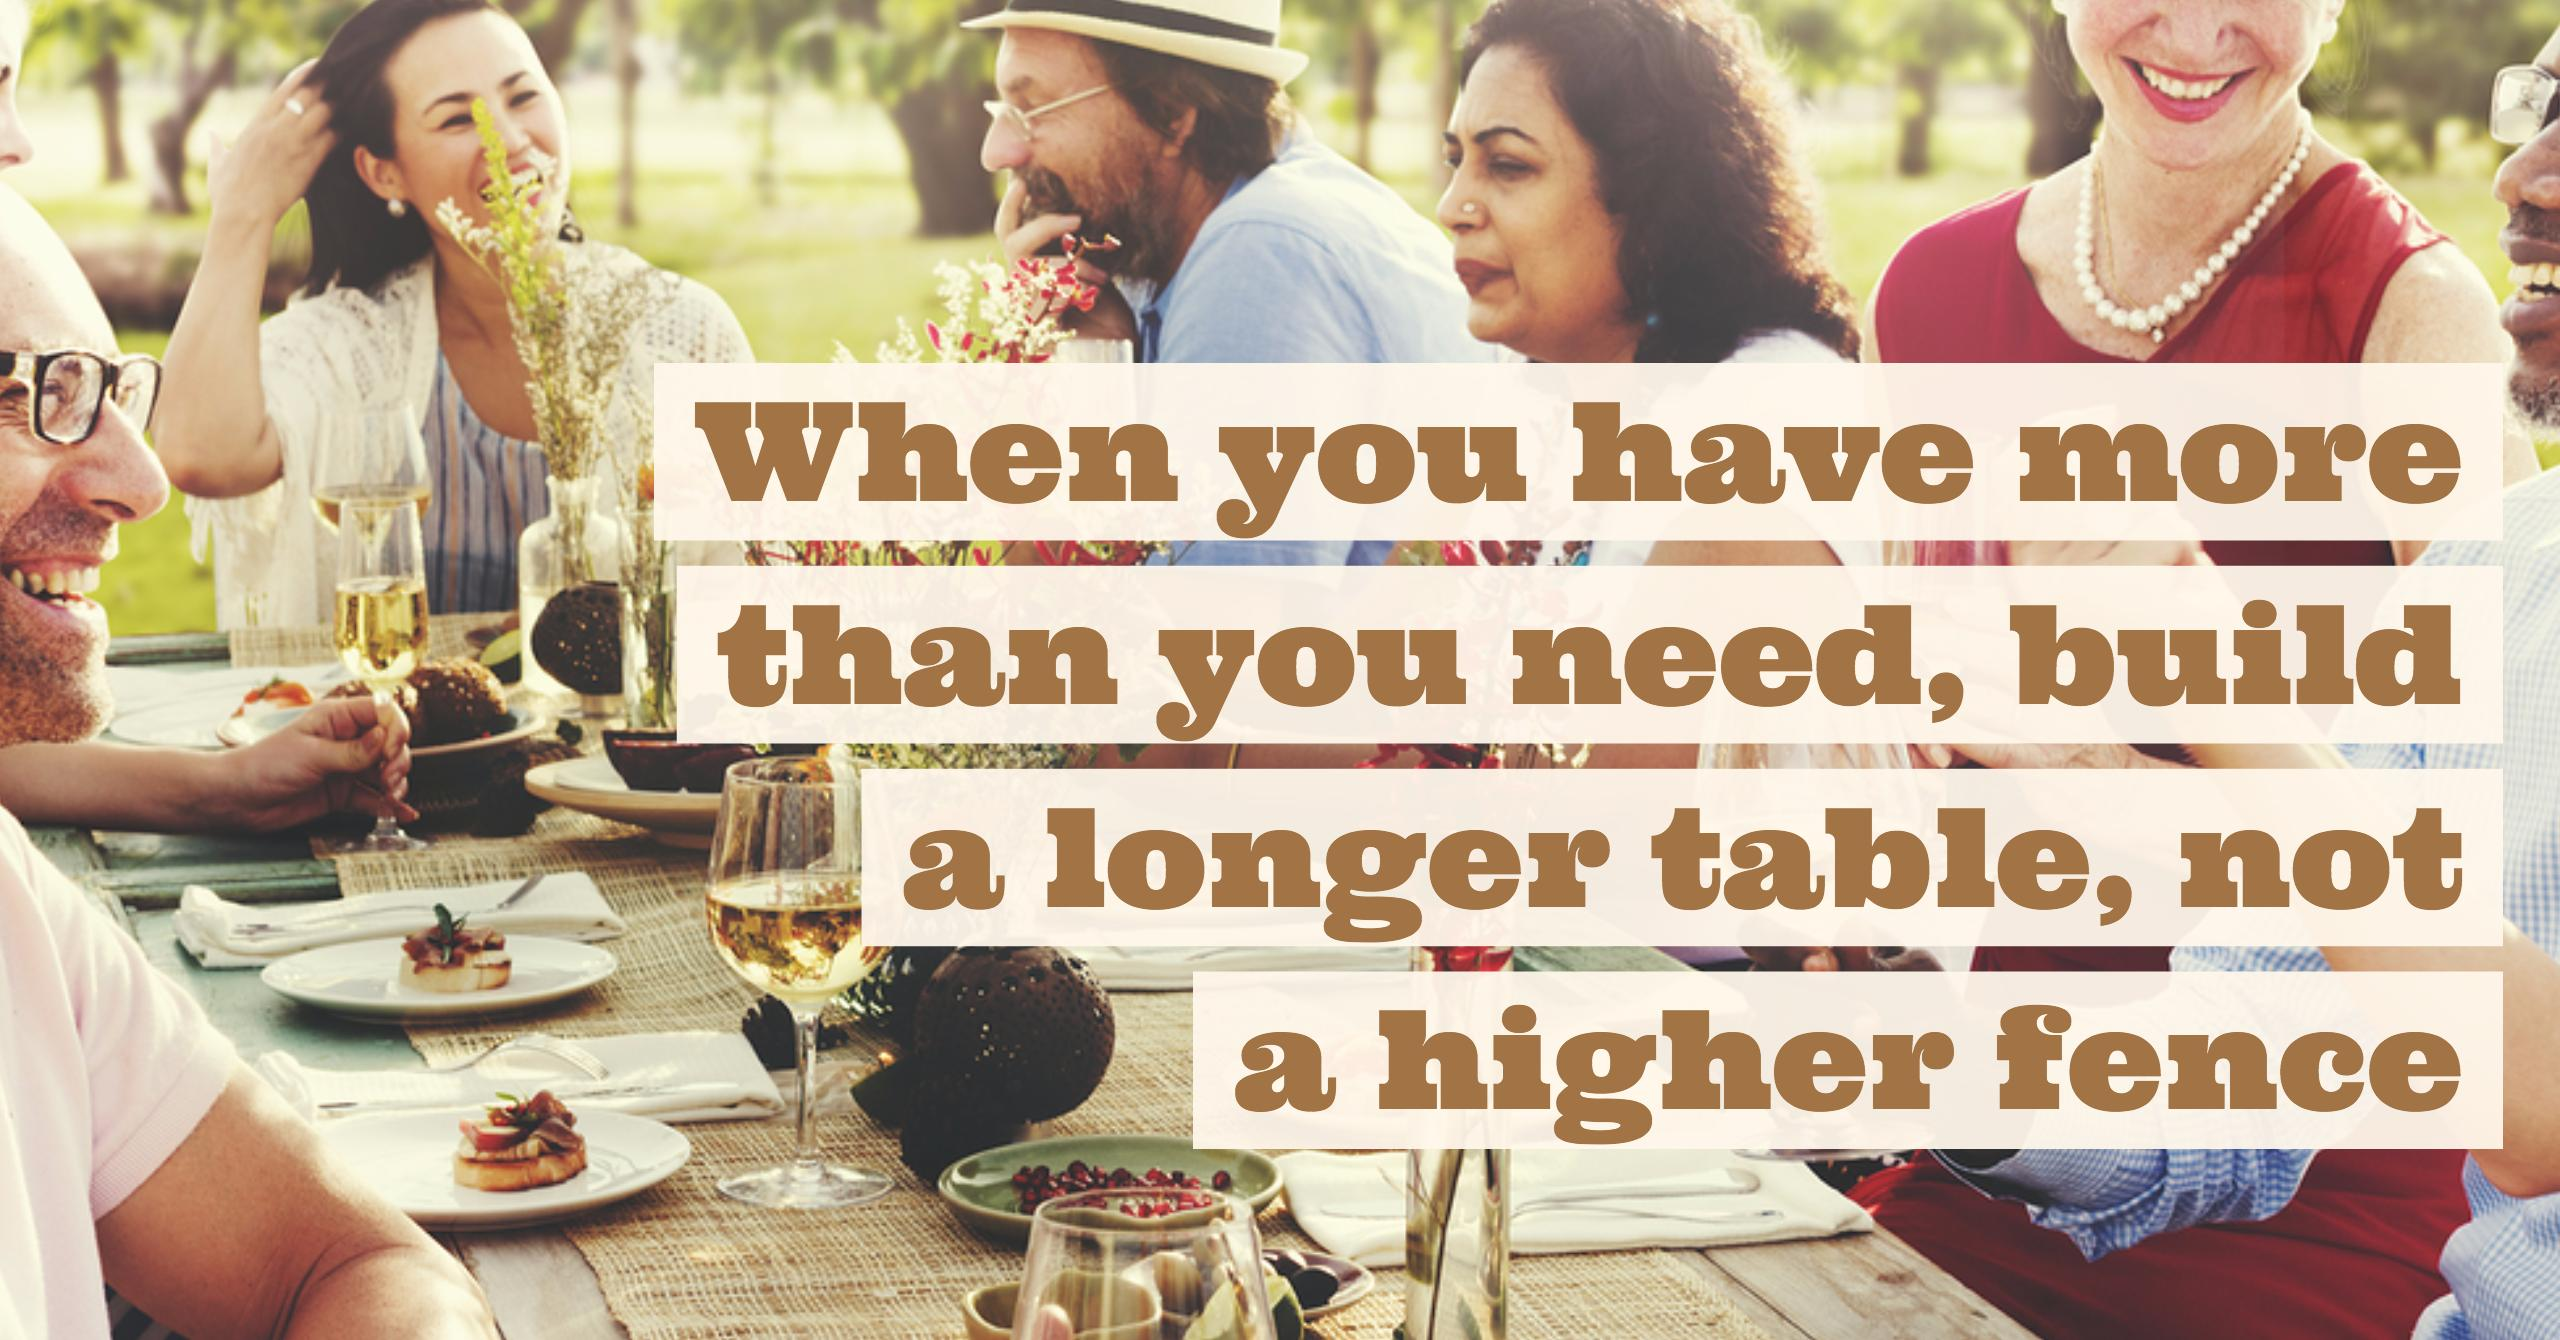 Build A Longer Table Not A Higher Fence